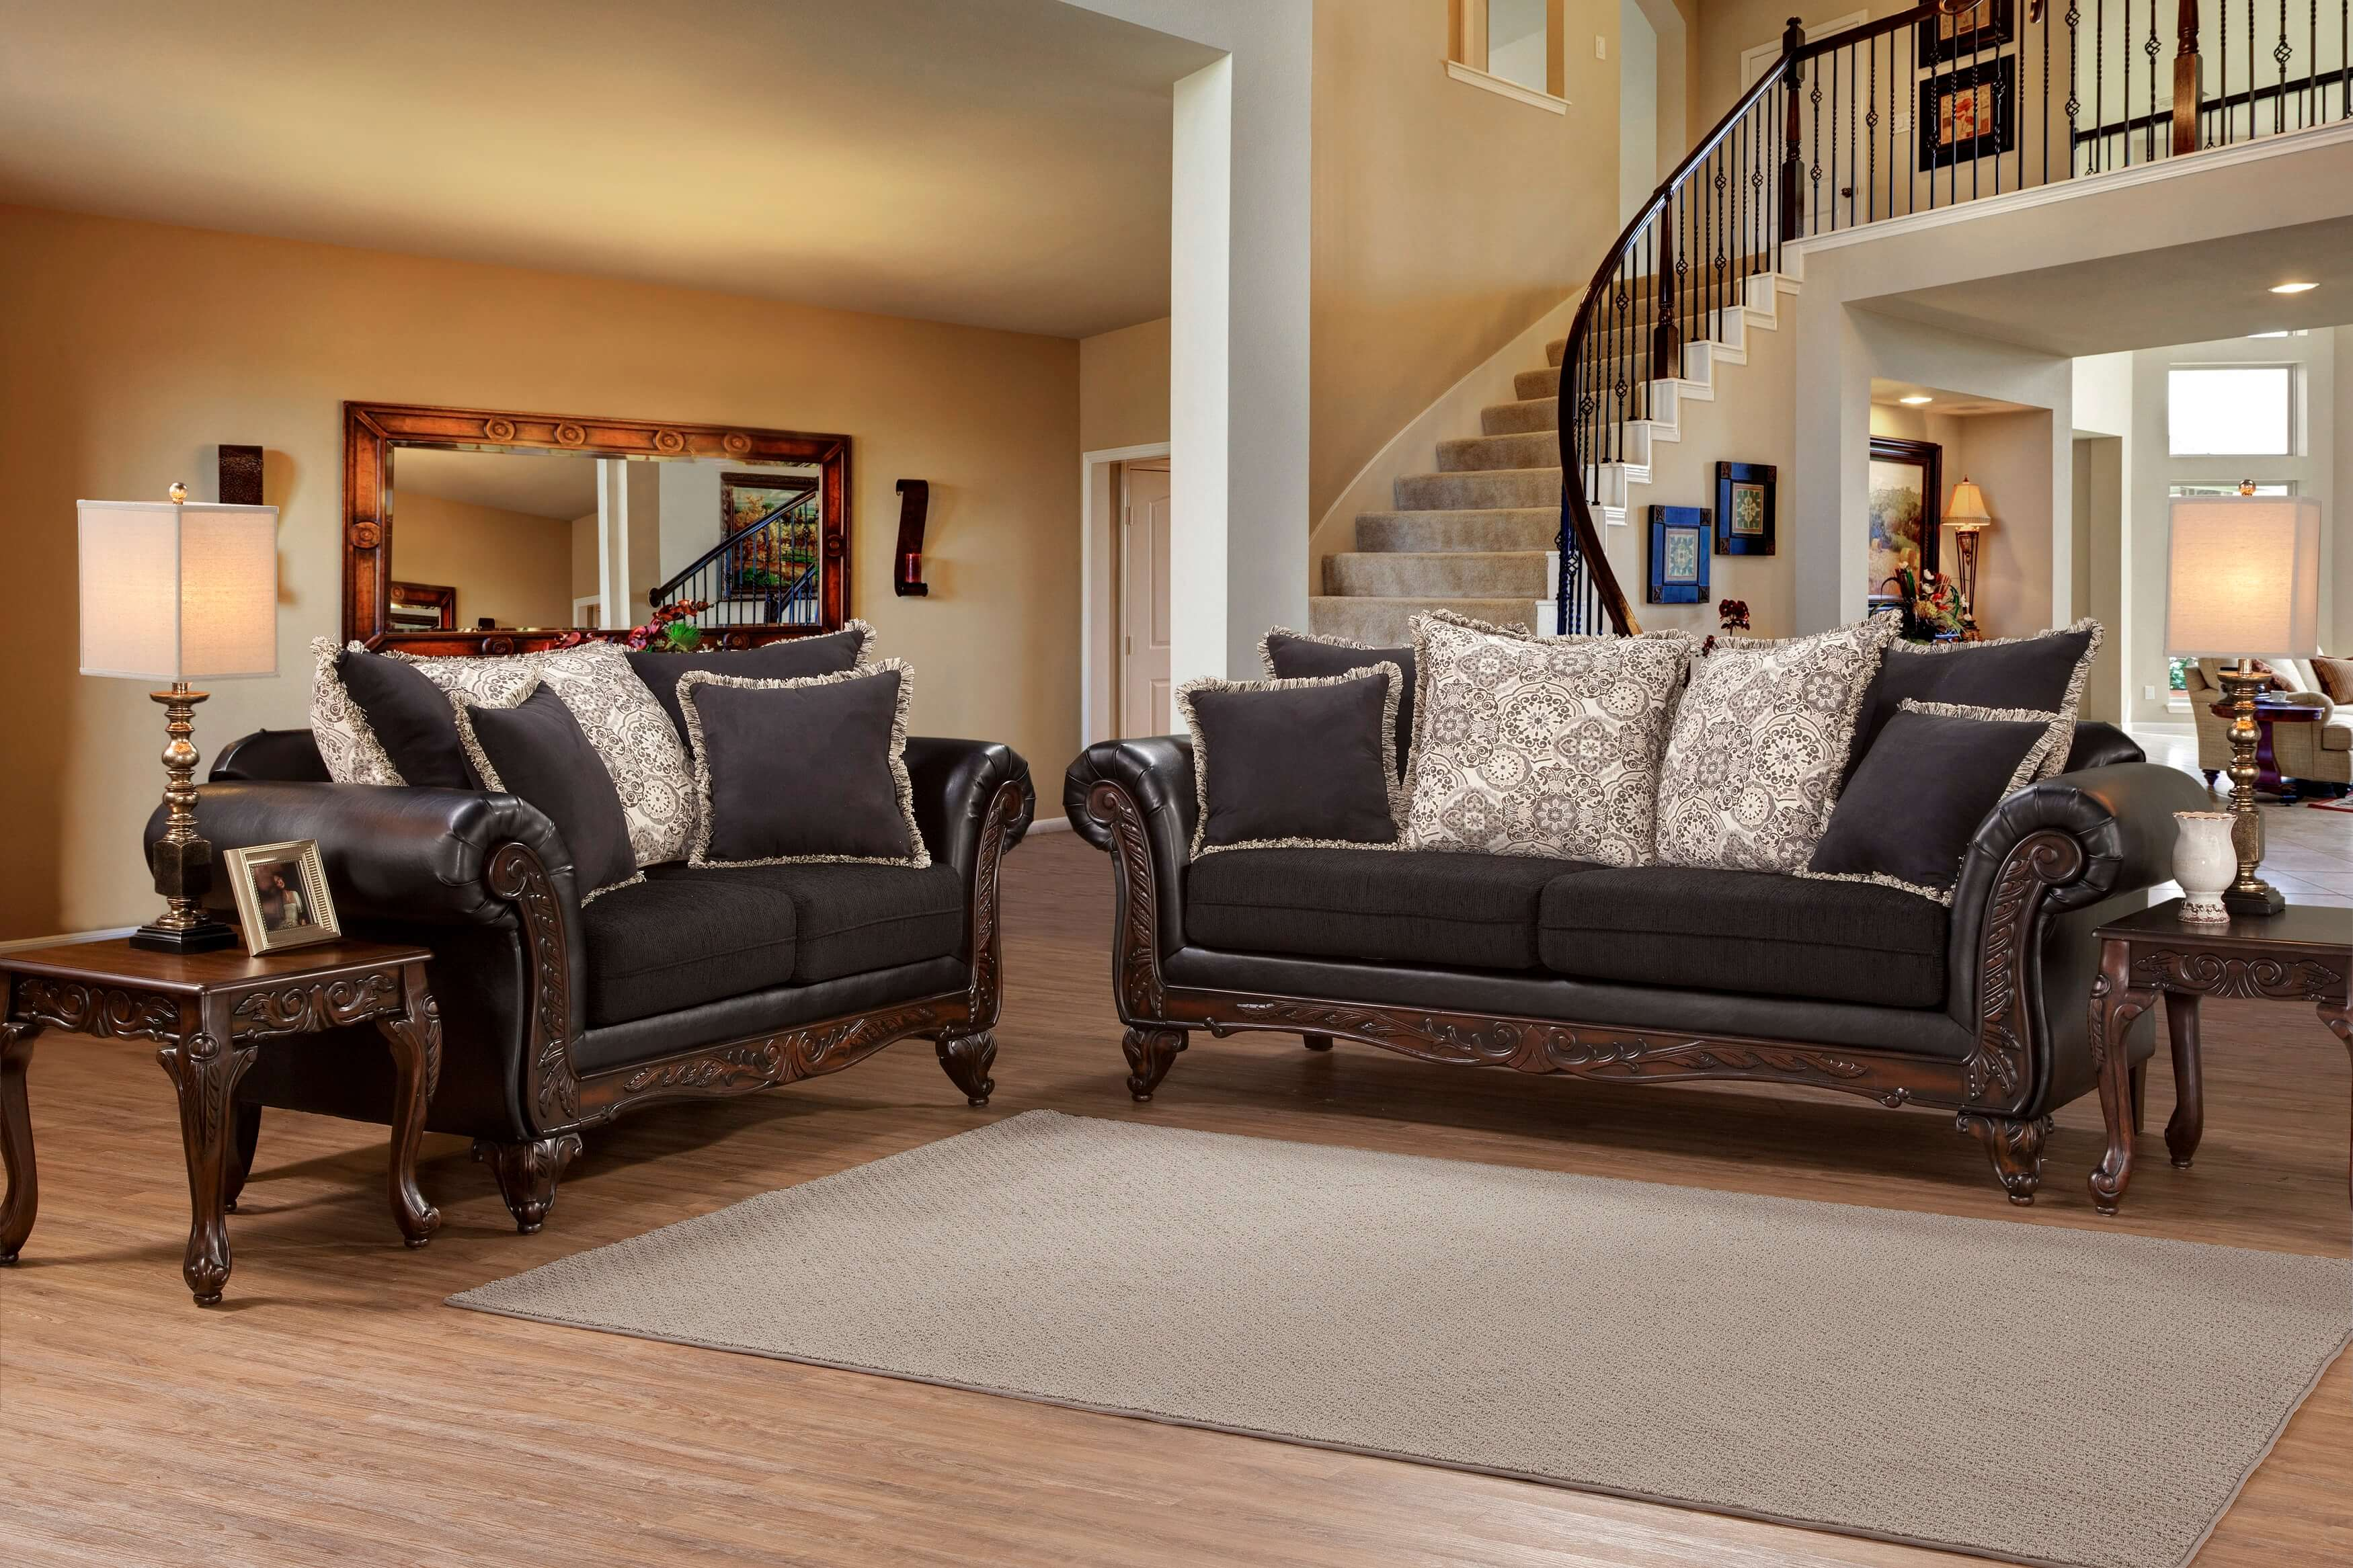 Serta Soprano Ebony Sienna Sofa and Loveseat | Living Room Sets